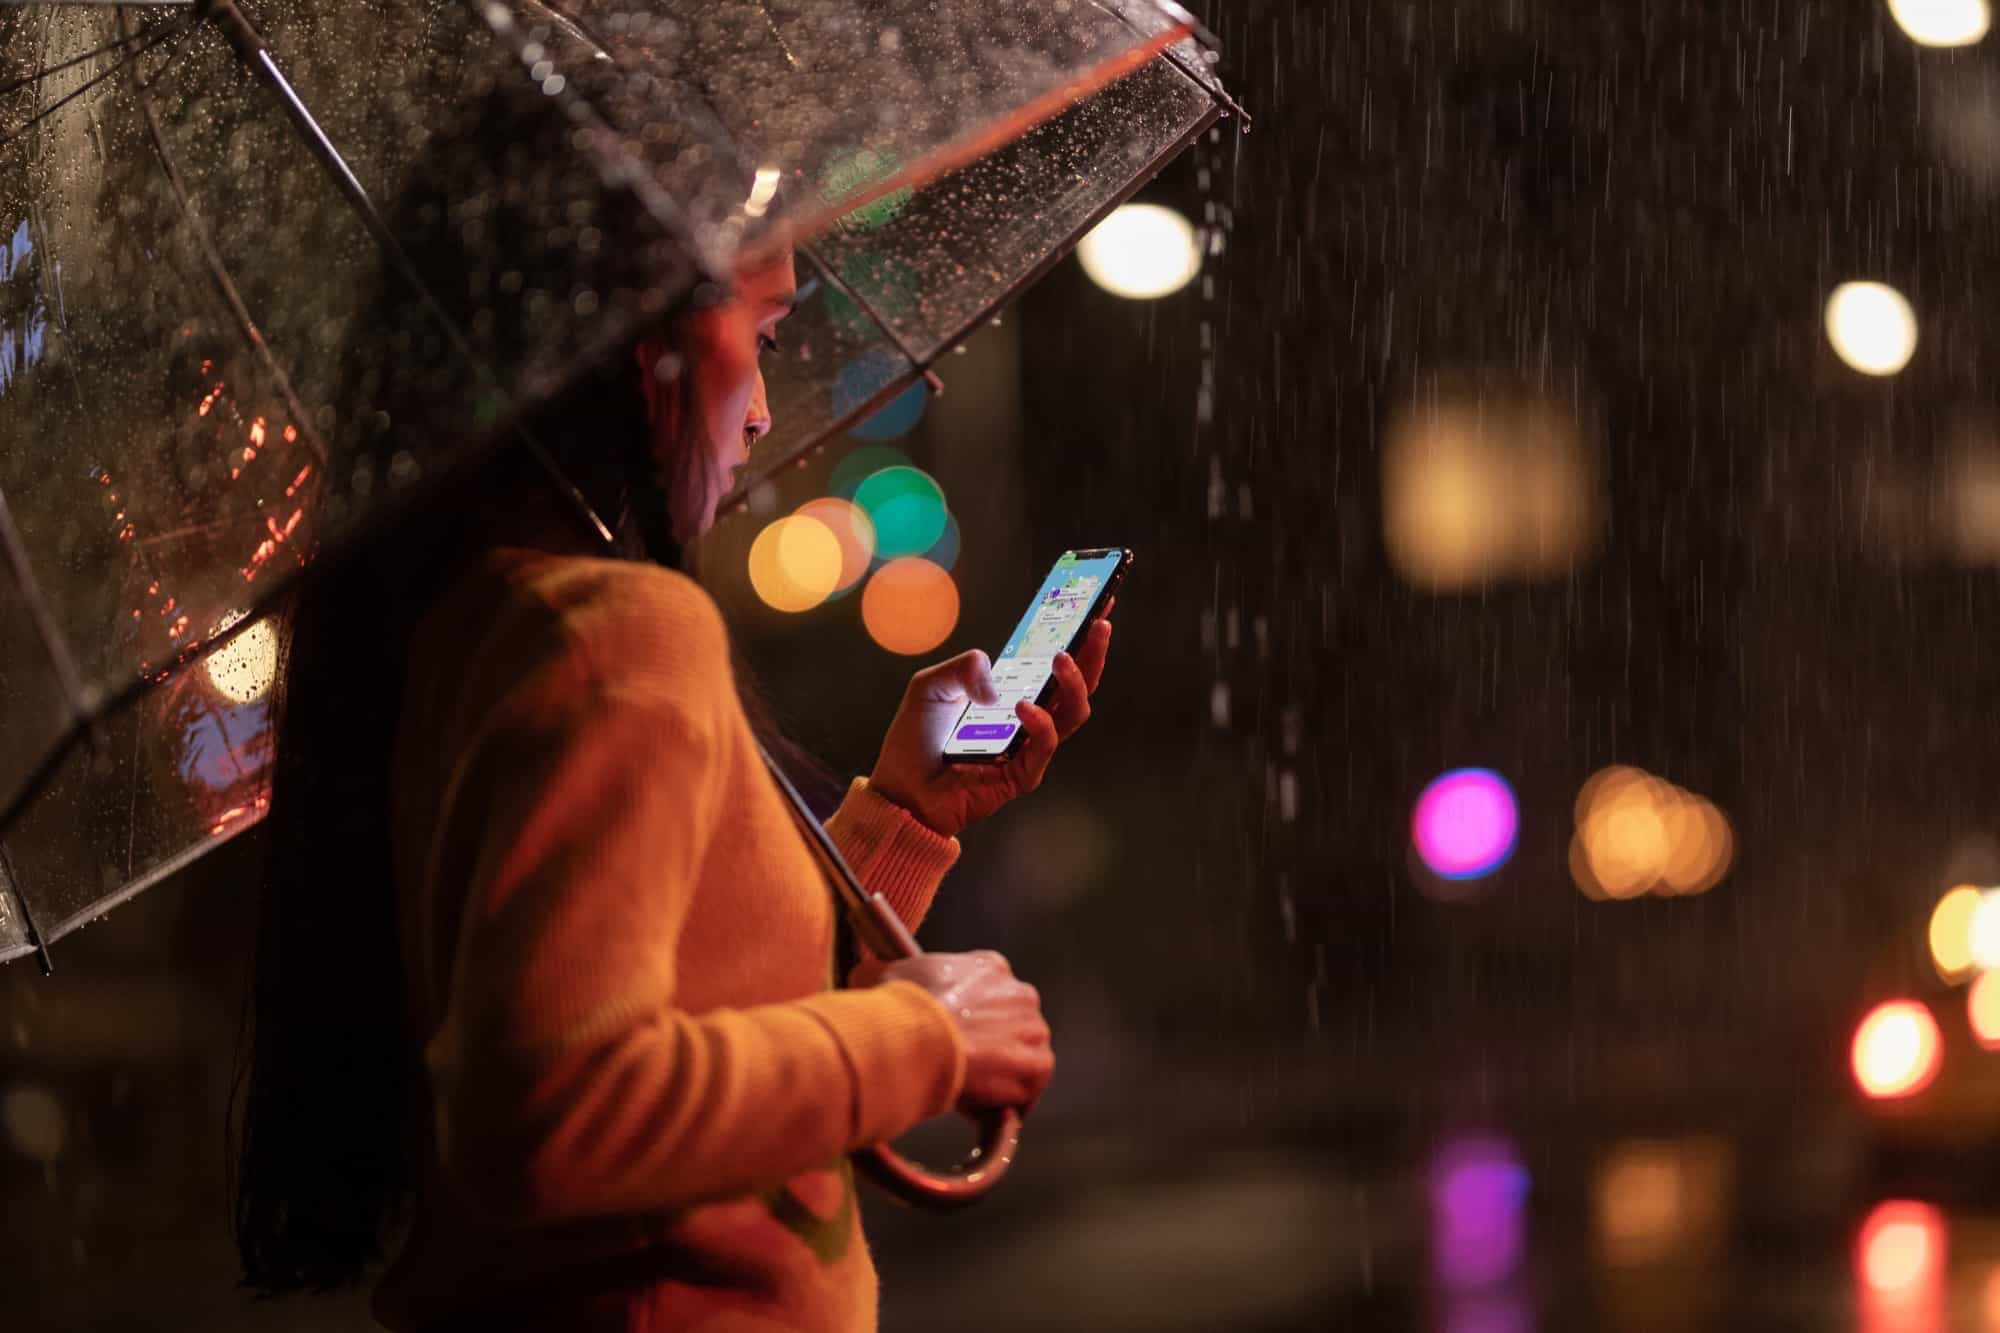 Any of the new iPhones can handle the worst rainstorm.